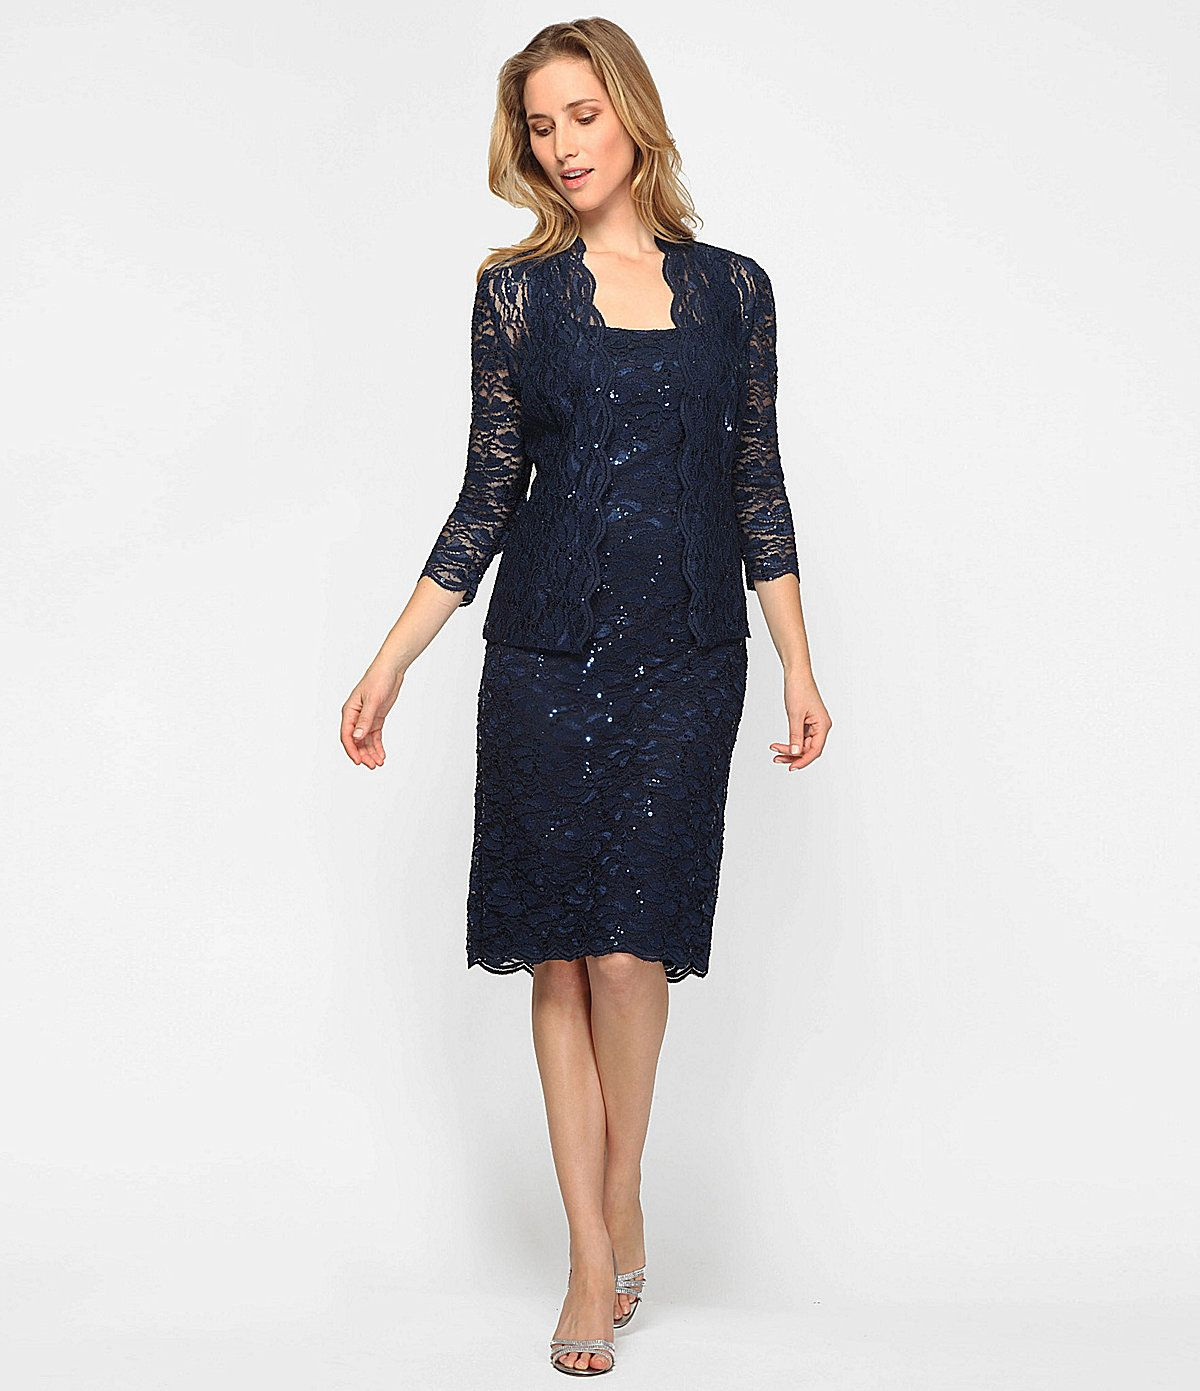 5224420b0749 Alex Evenings Petite Sequined Lace Jacket Dress in 2019 | Wedding ...